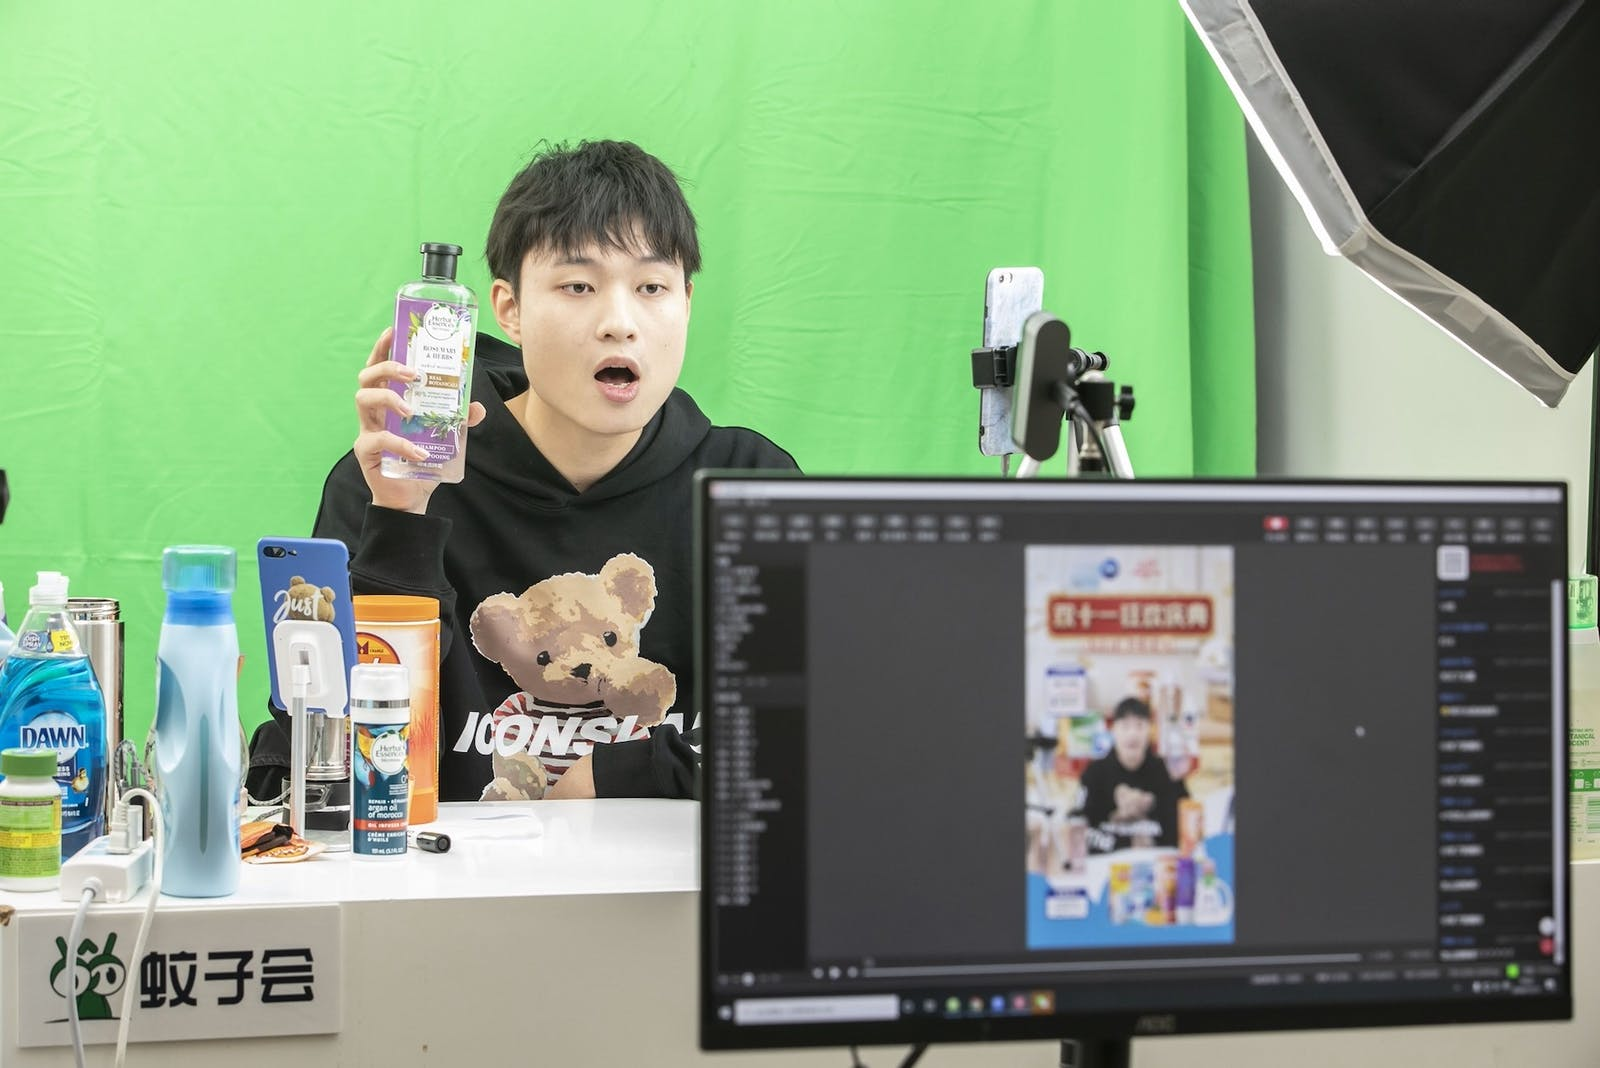 A livestreamer promotes personal hygiene products during Alibaba's annual shopping event on November, 11, 2020. More U.S. tech companies are testing live shopping.